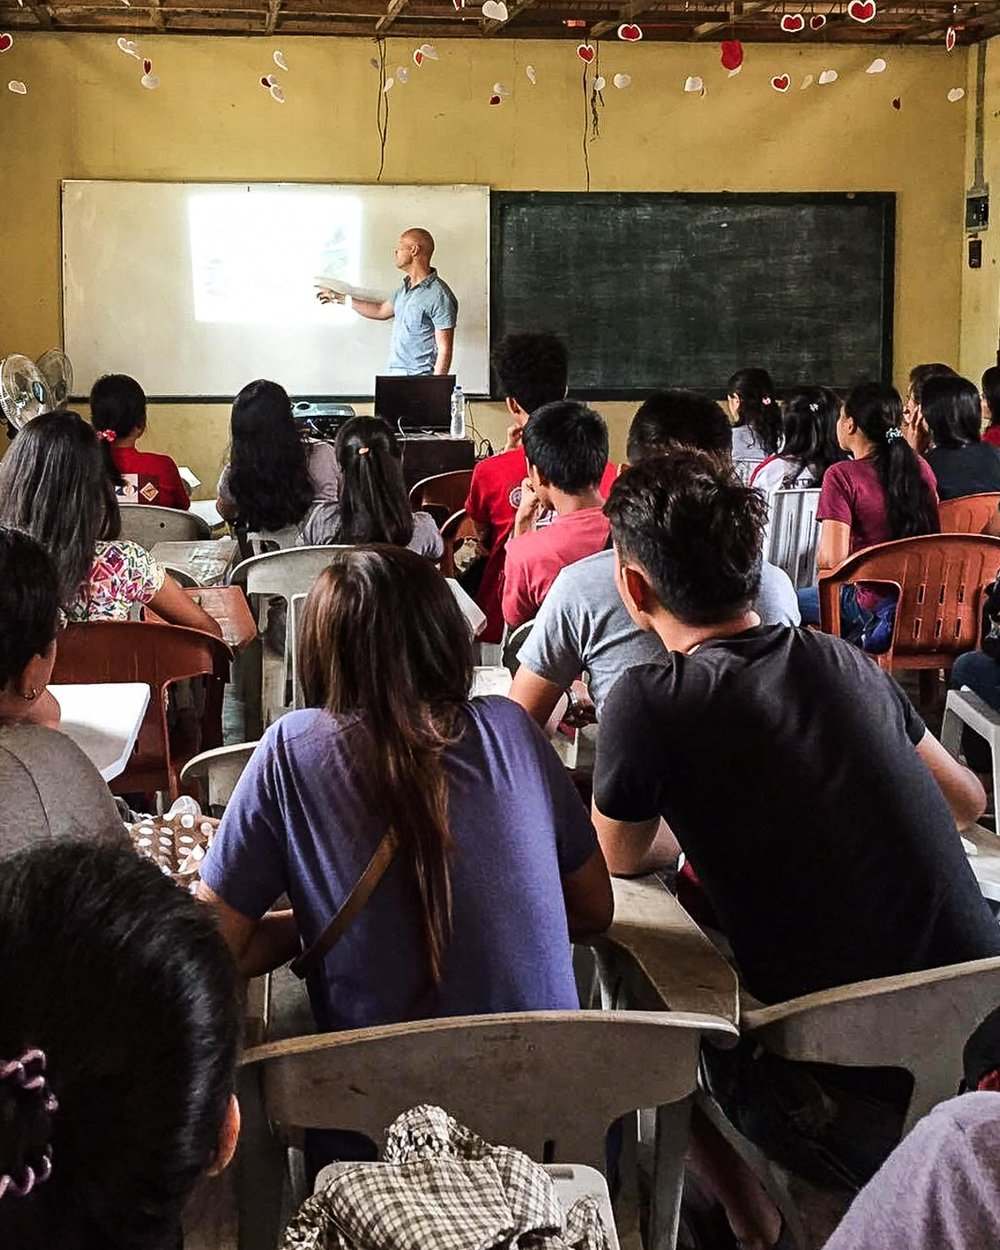 EASTERN VISAYAS STATE UNIVERSITY - Through seminars and lectures we are sharing our knowledge and expertise with Engineering Students studying at Eastern Visayas State University. Read more.